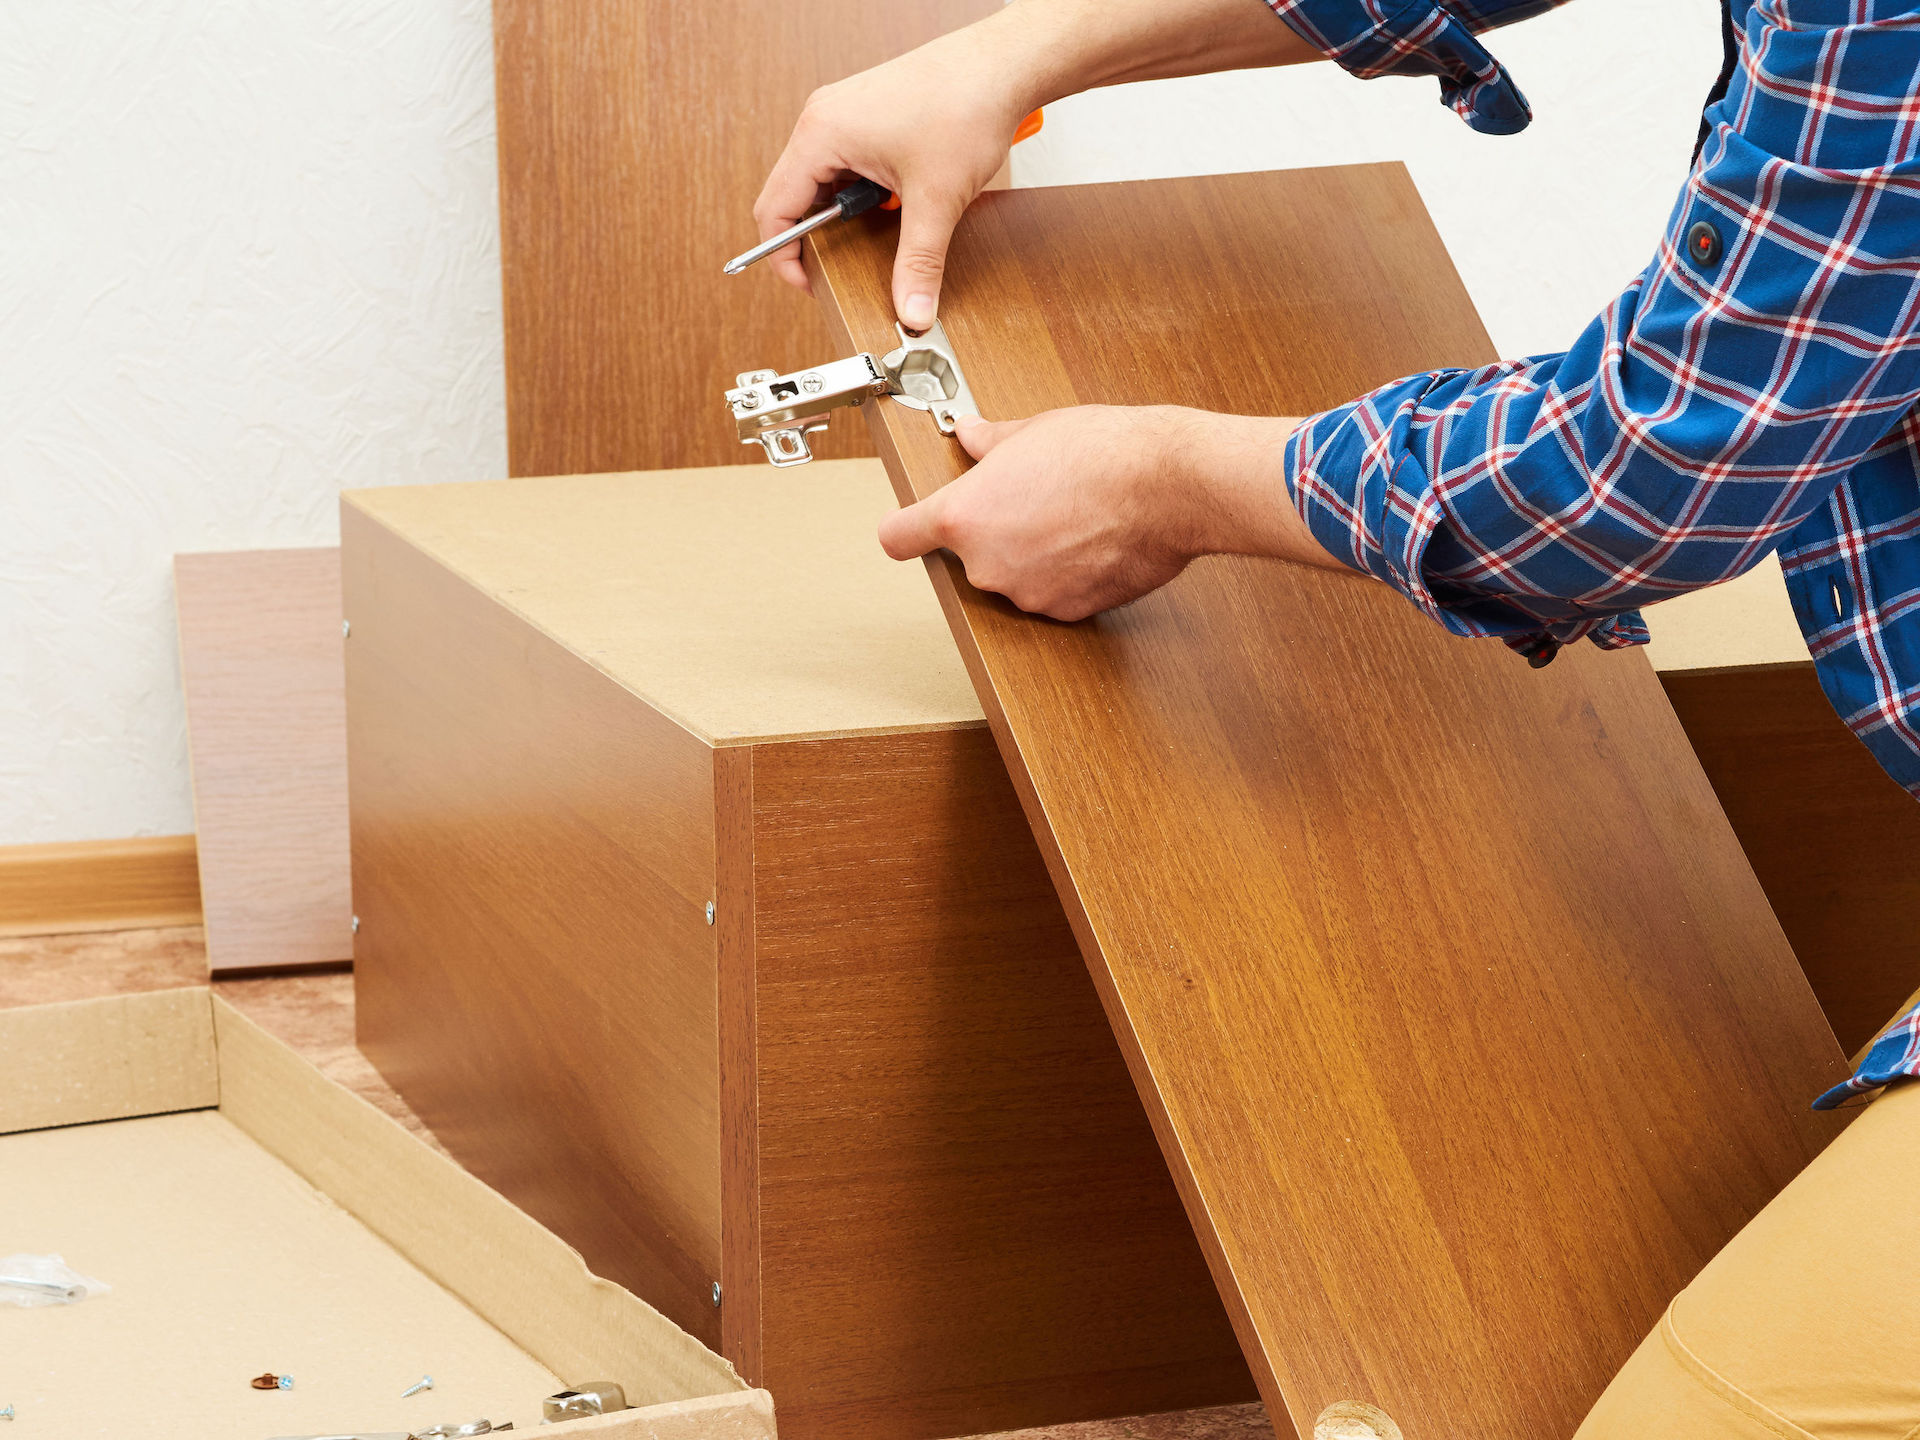 handyman furniture assembly